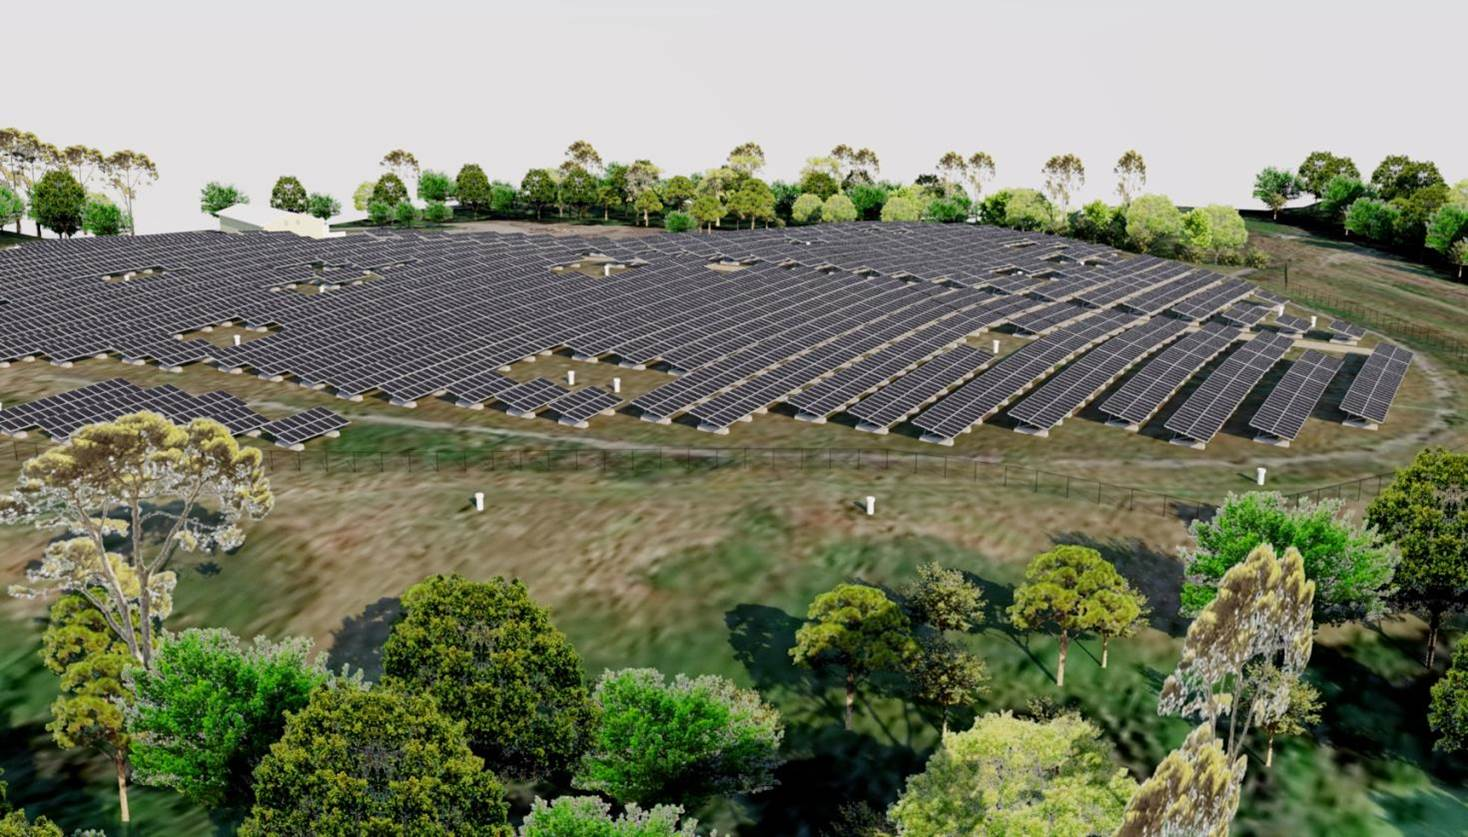 Solar Panel arrays in the proposed location